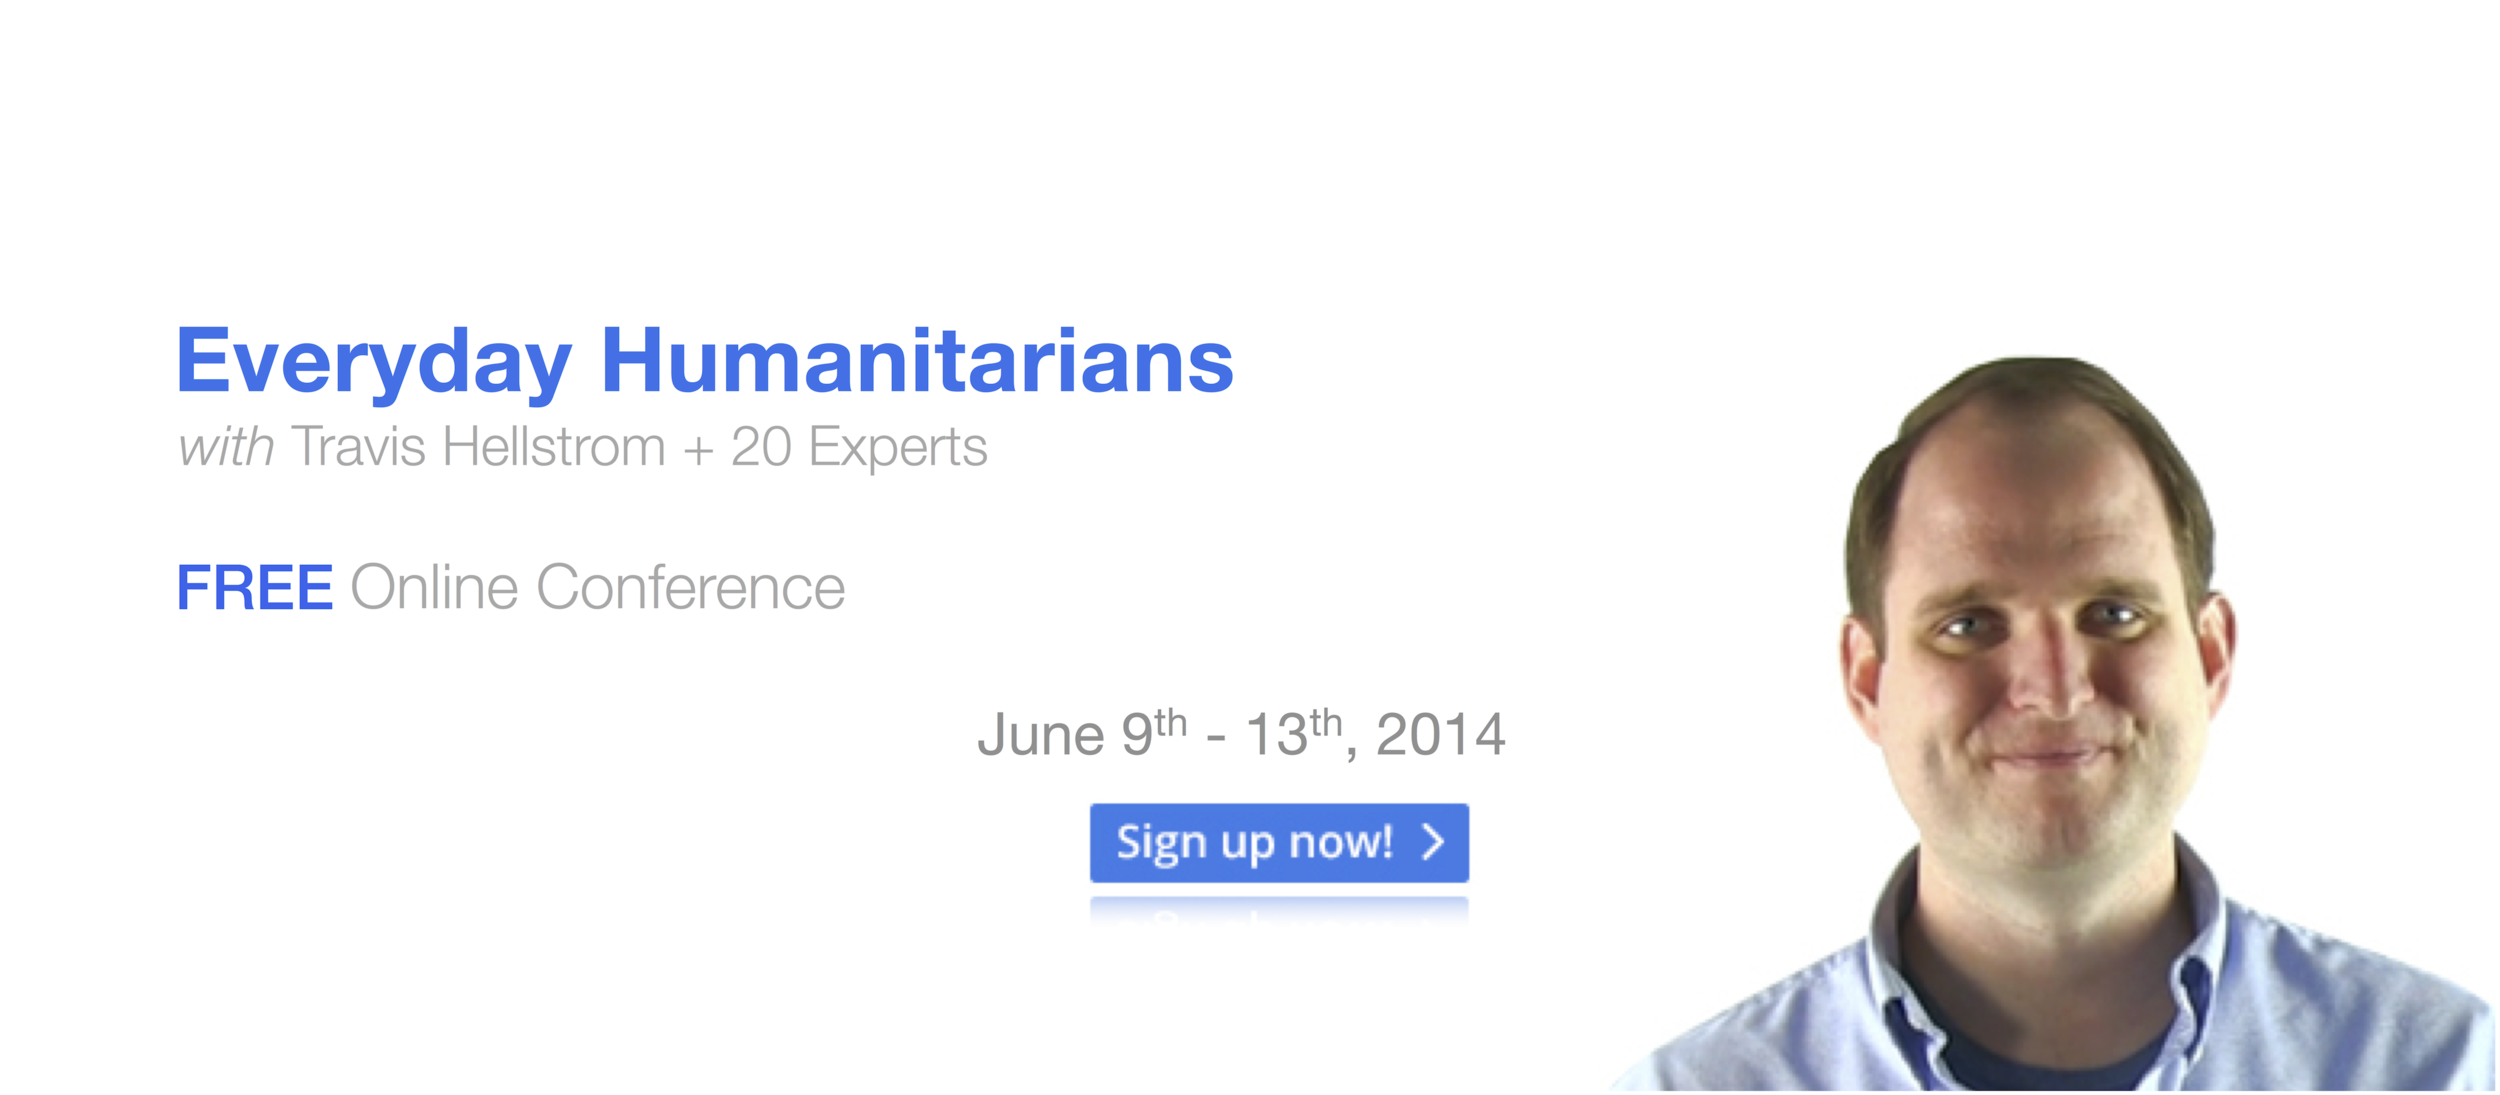 Humanitarian Conference Facebook Cover Photo